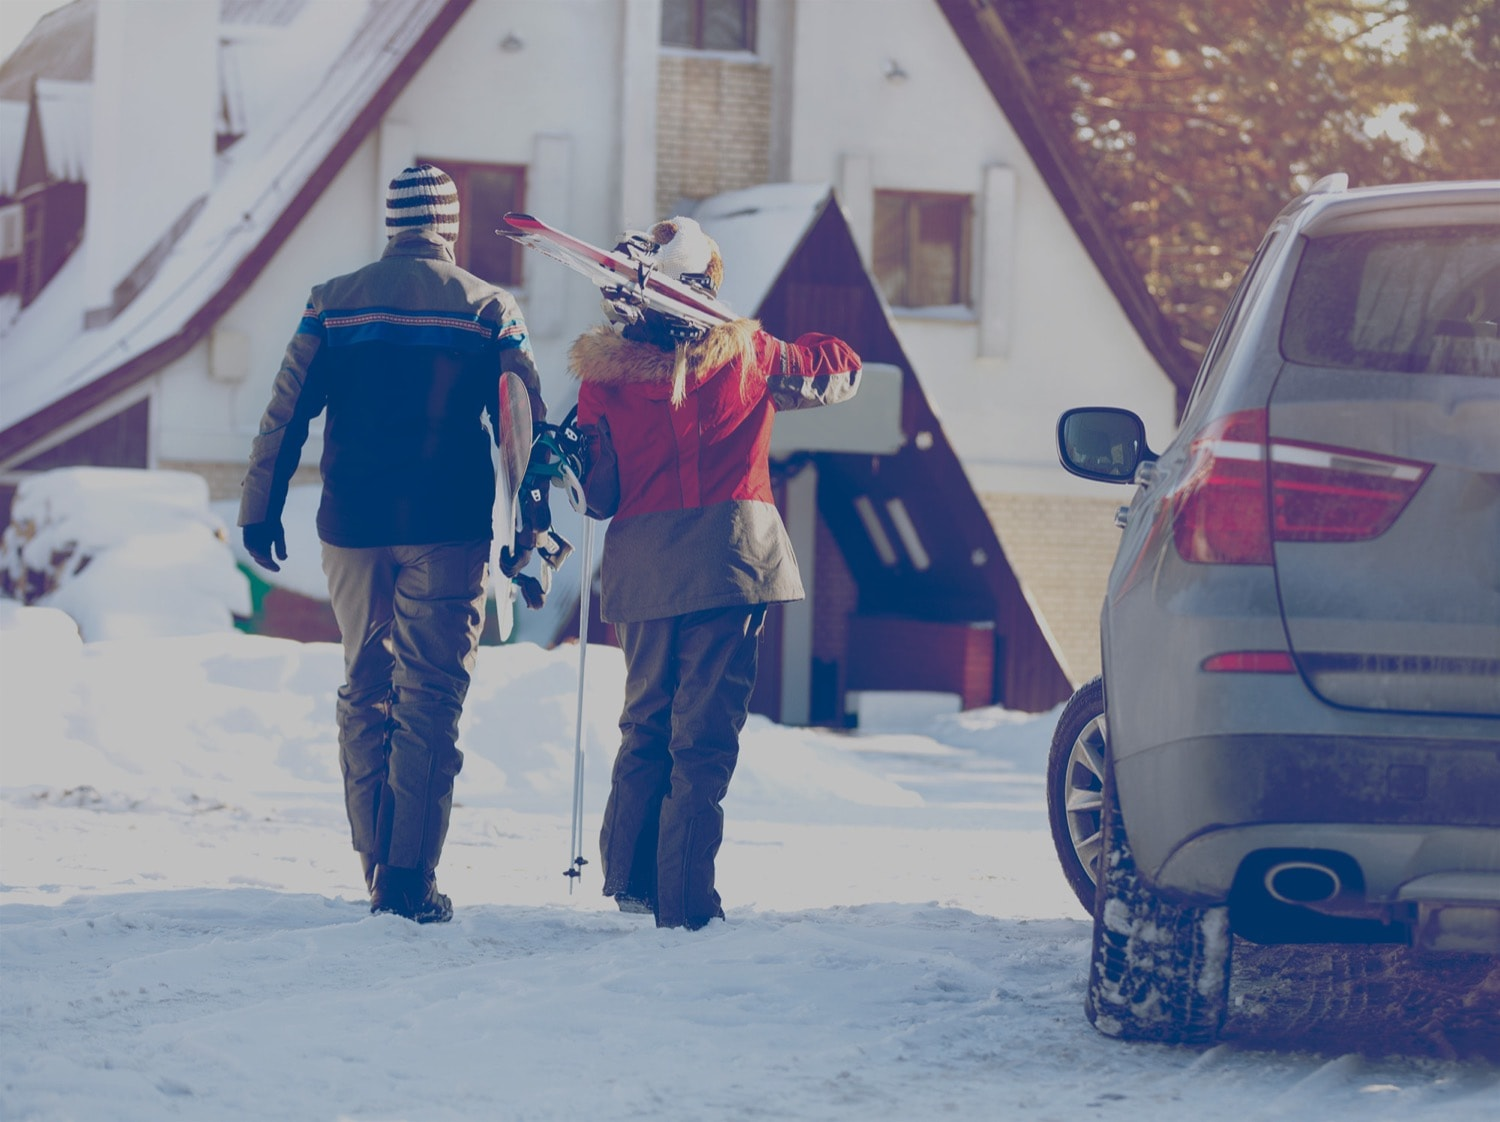 Couple walking into ski resort from the parking lot.